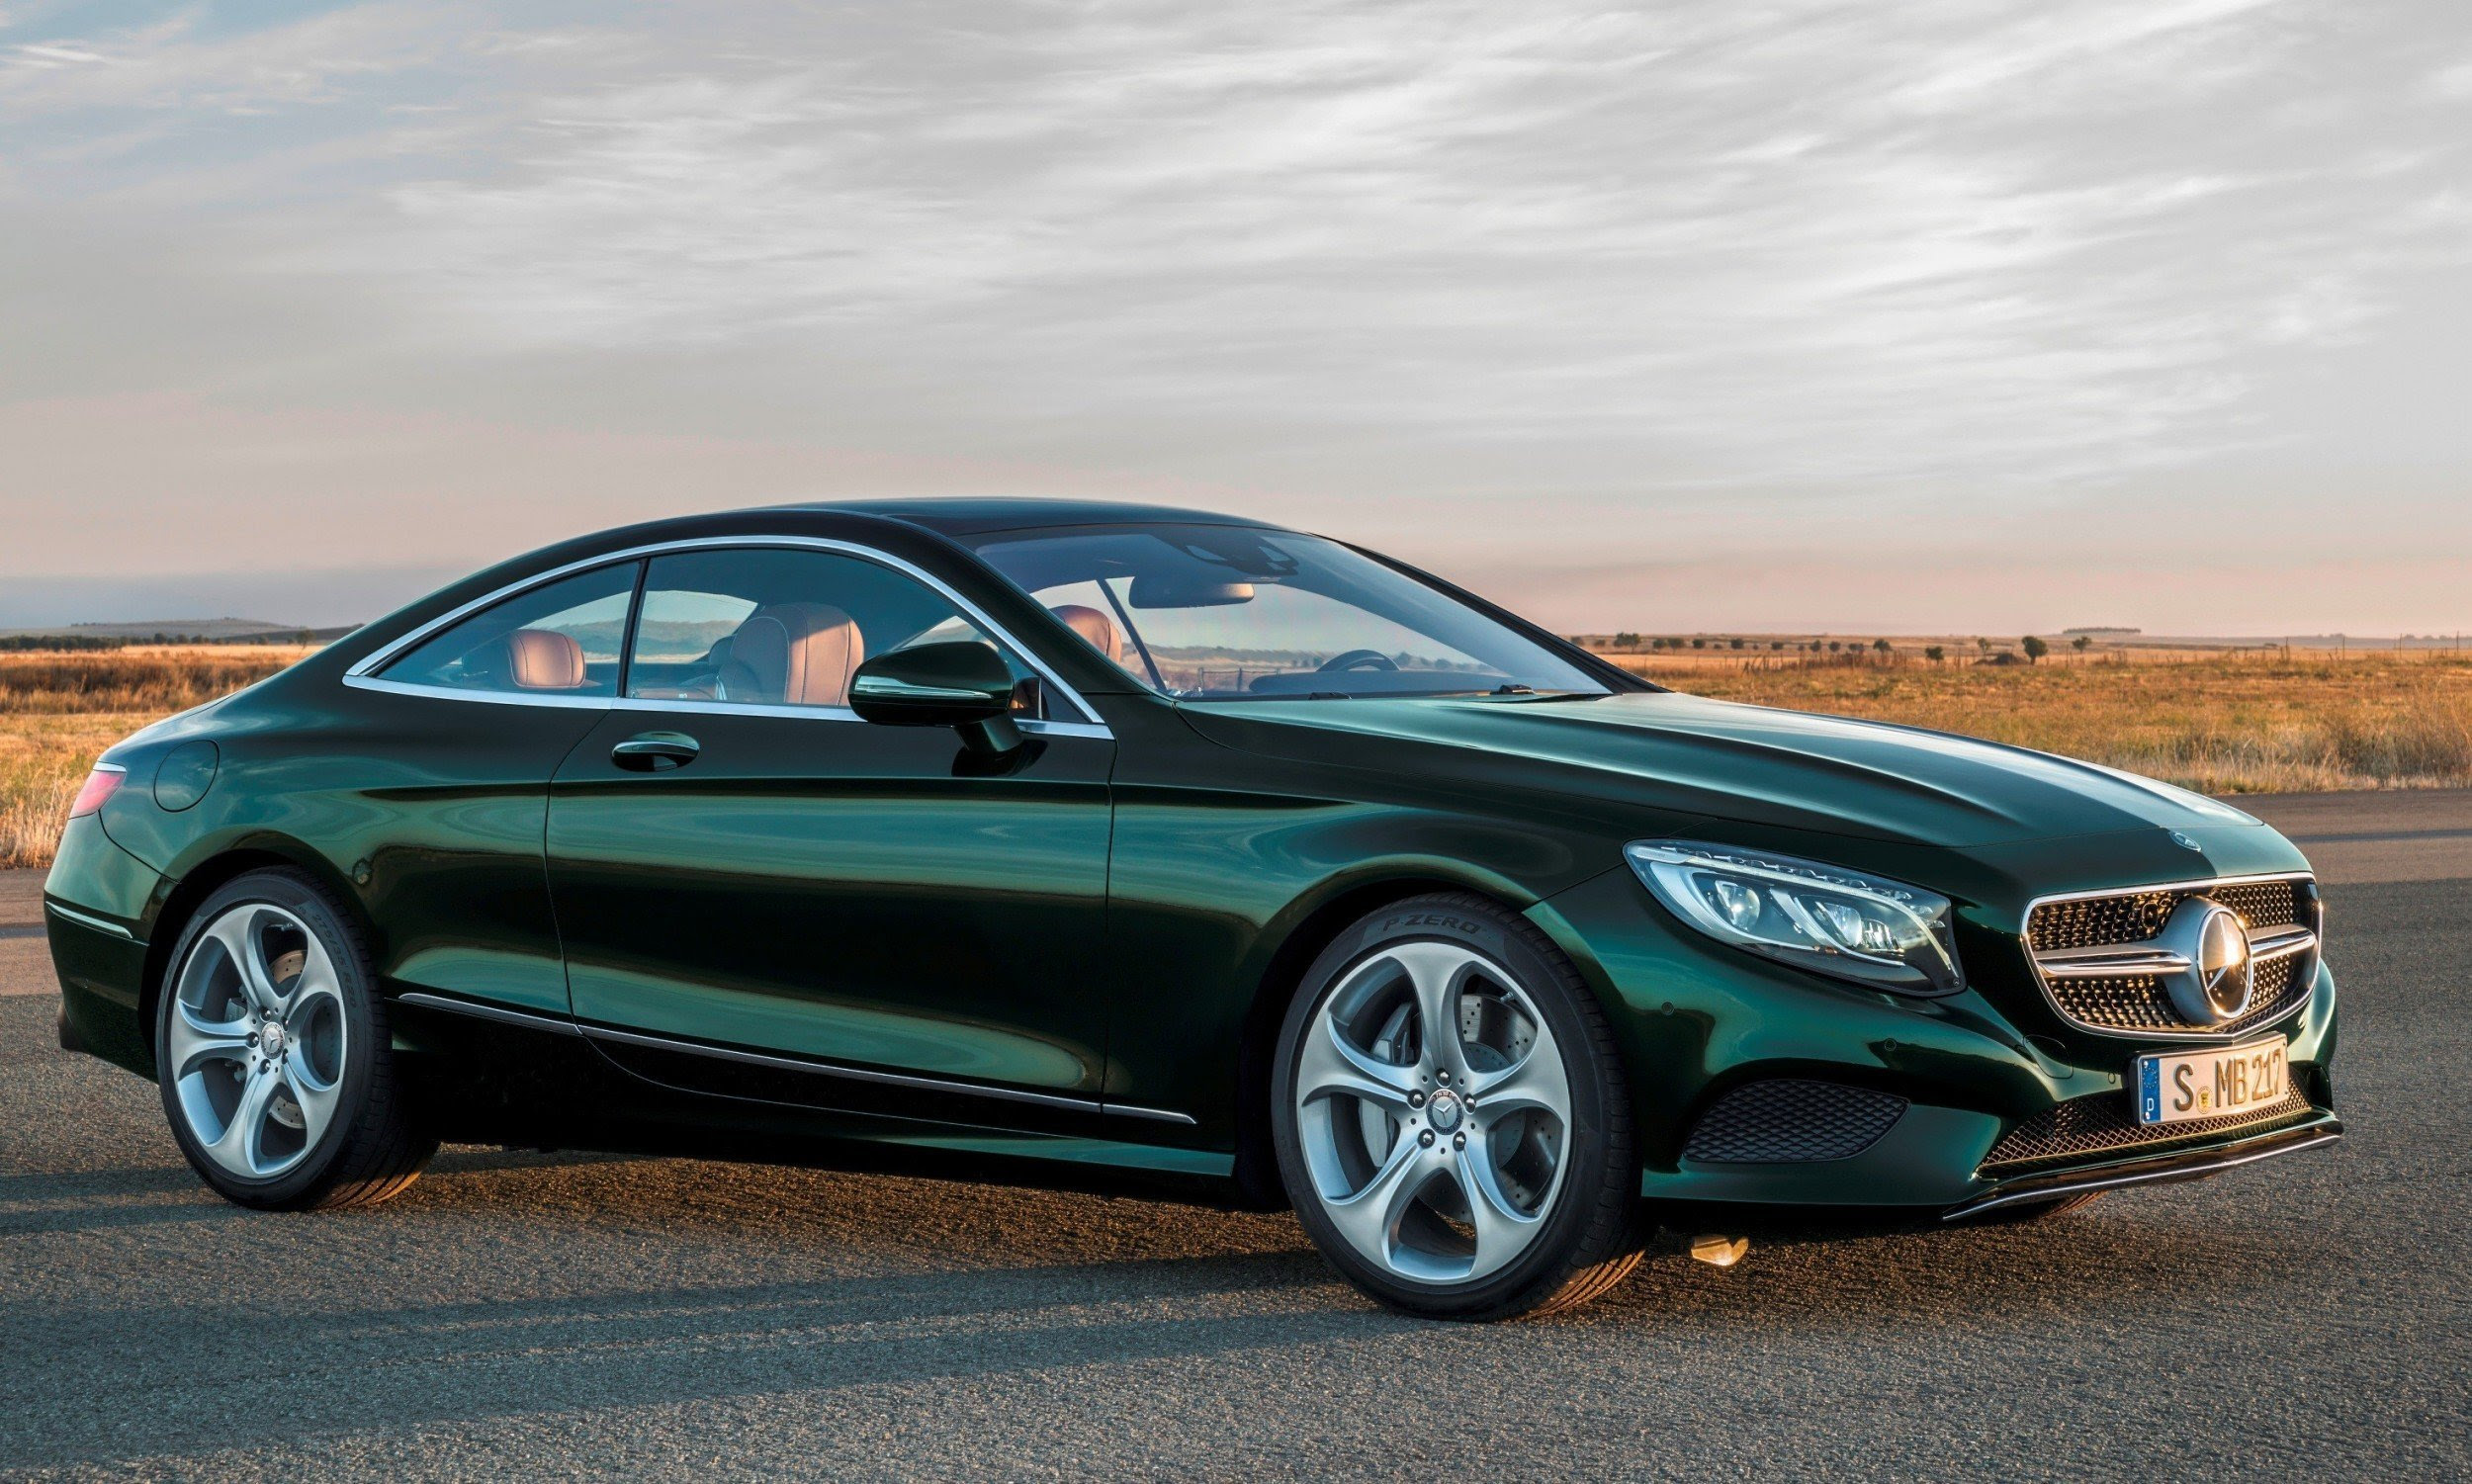 Update1 With 70 New Photos - 2015 Mercedes-Benz S-Class Coupe